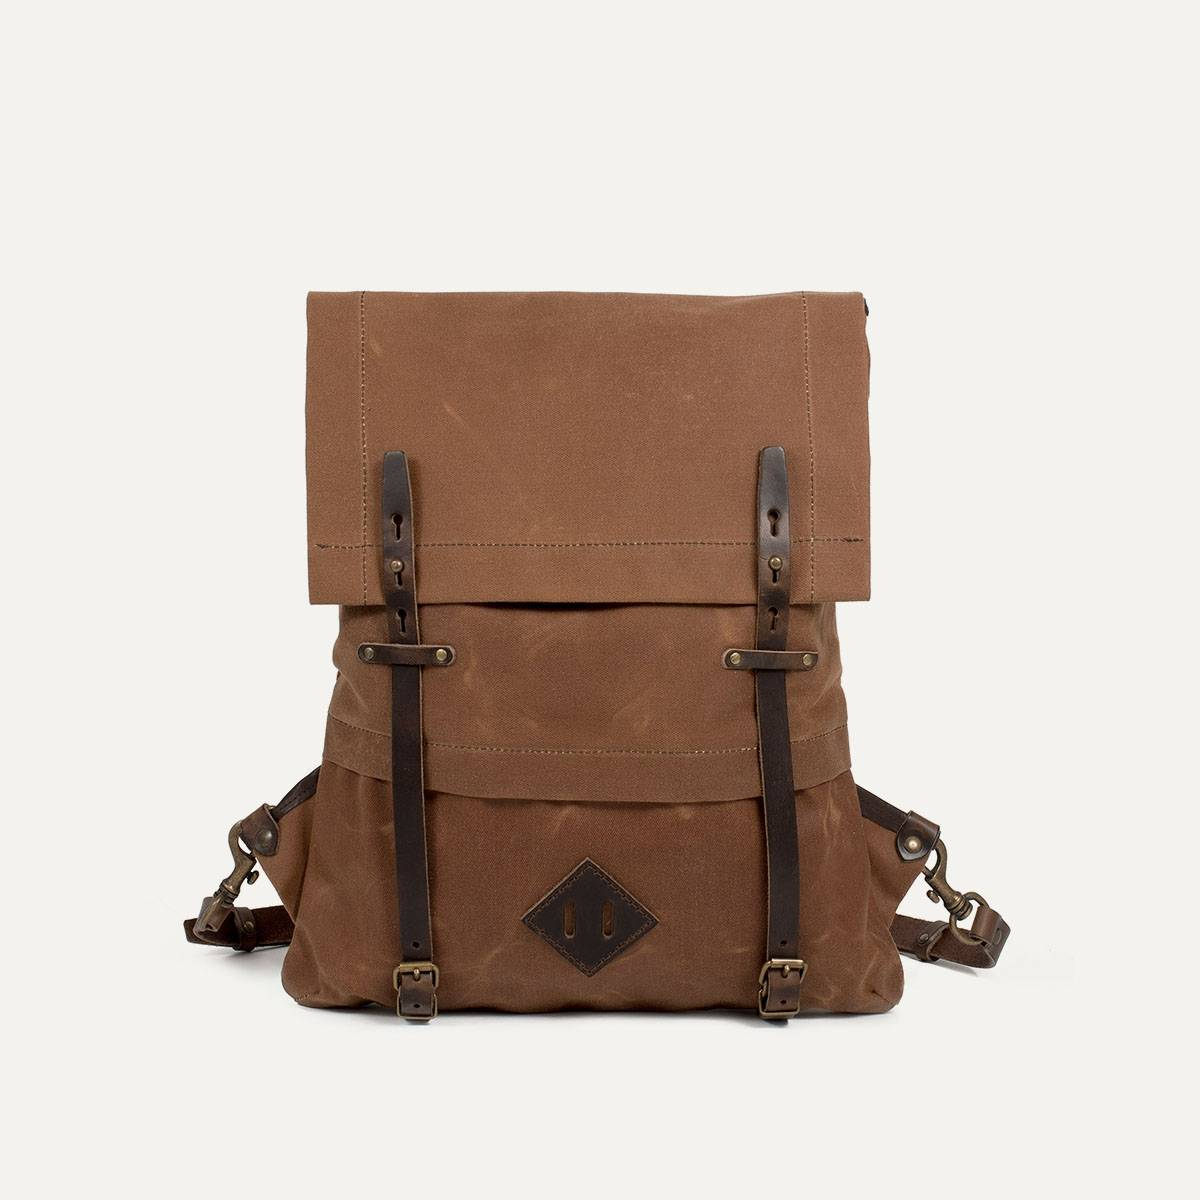 Coursier backpack WAXY - Camel/Brown (image n°1)